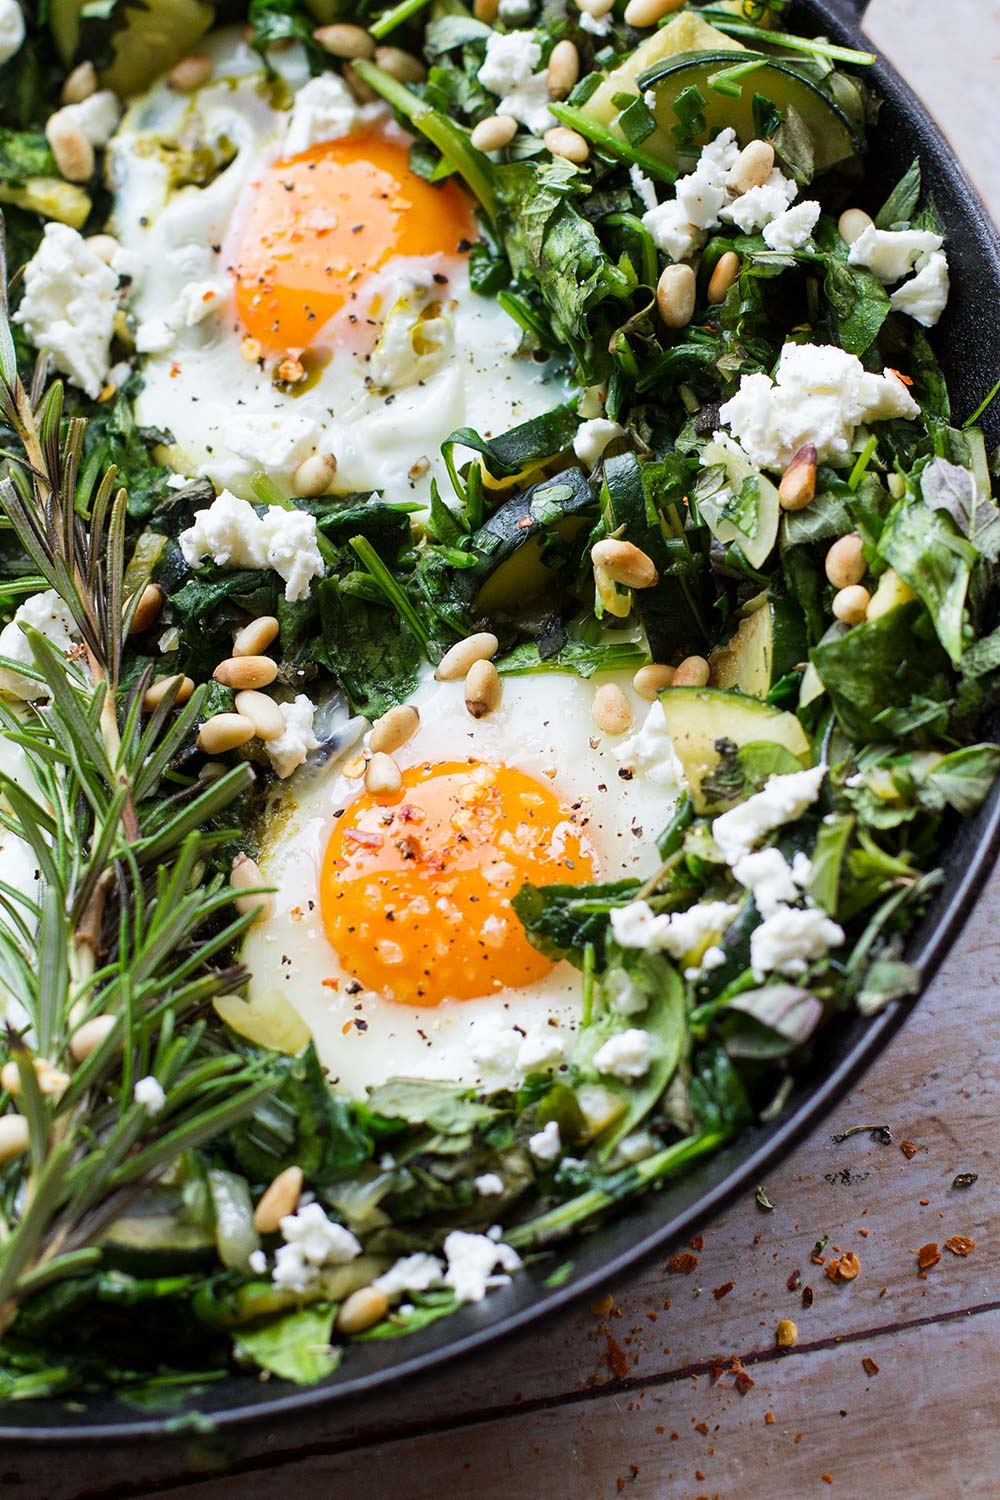 Close-up of the skillet showing two eggs, fresh rosemary and a bed of spinach.